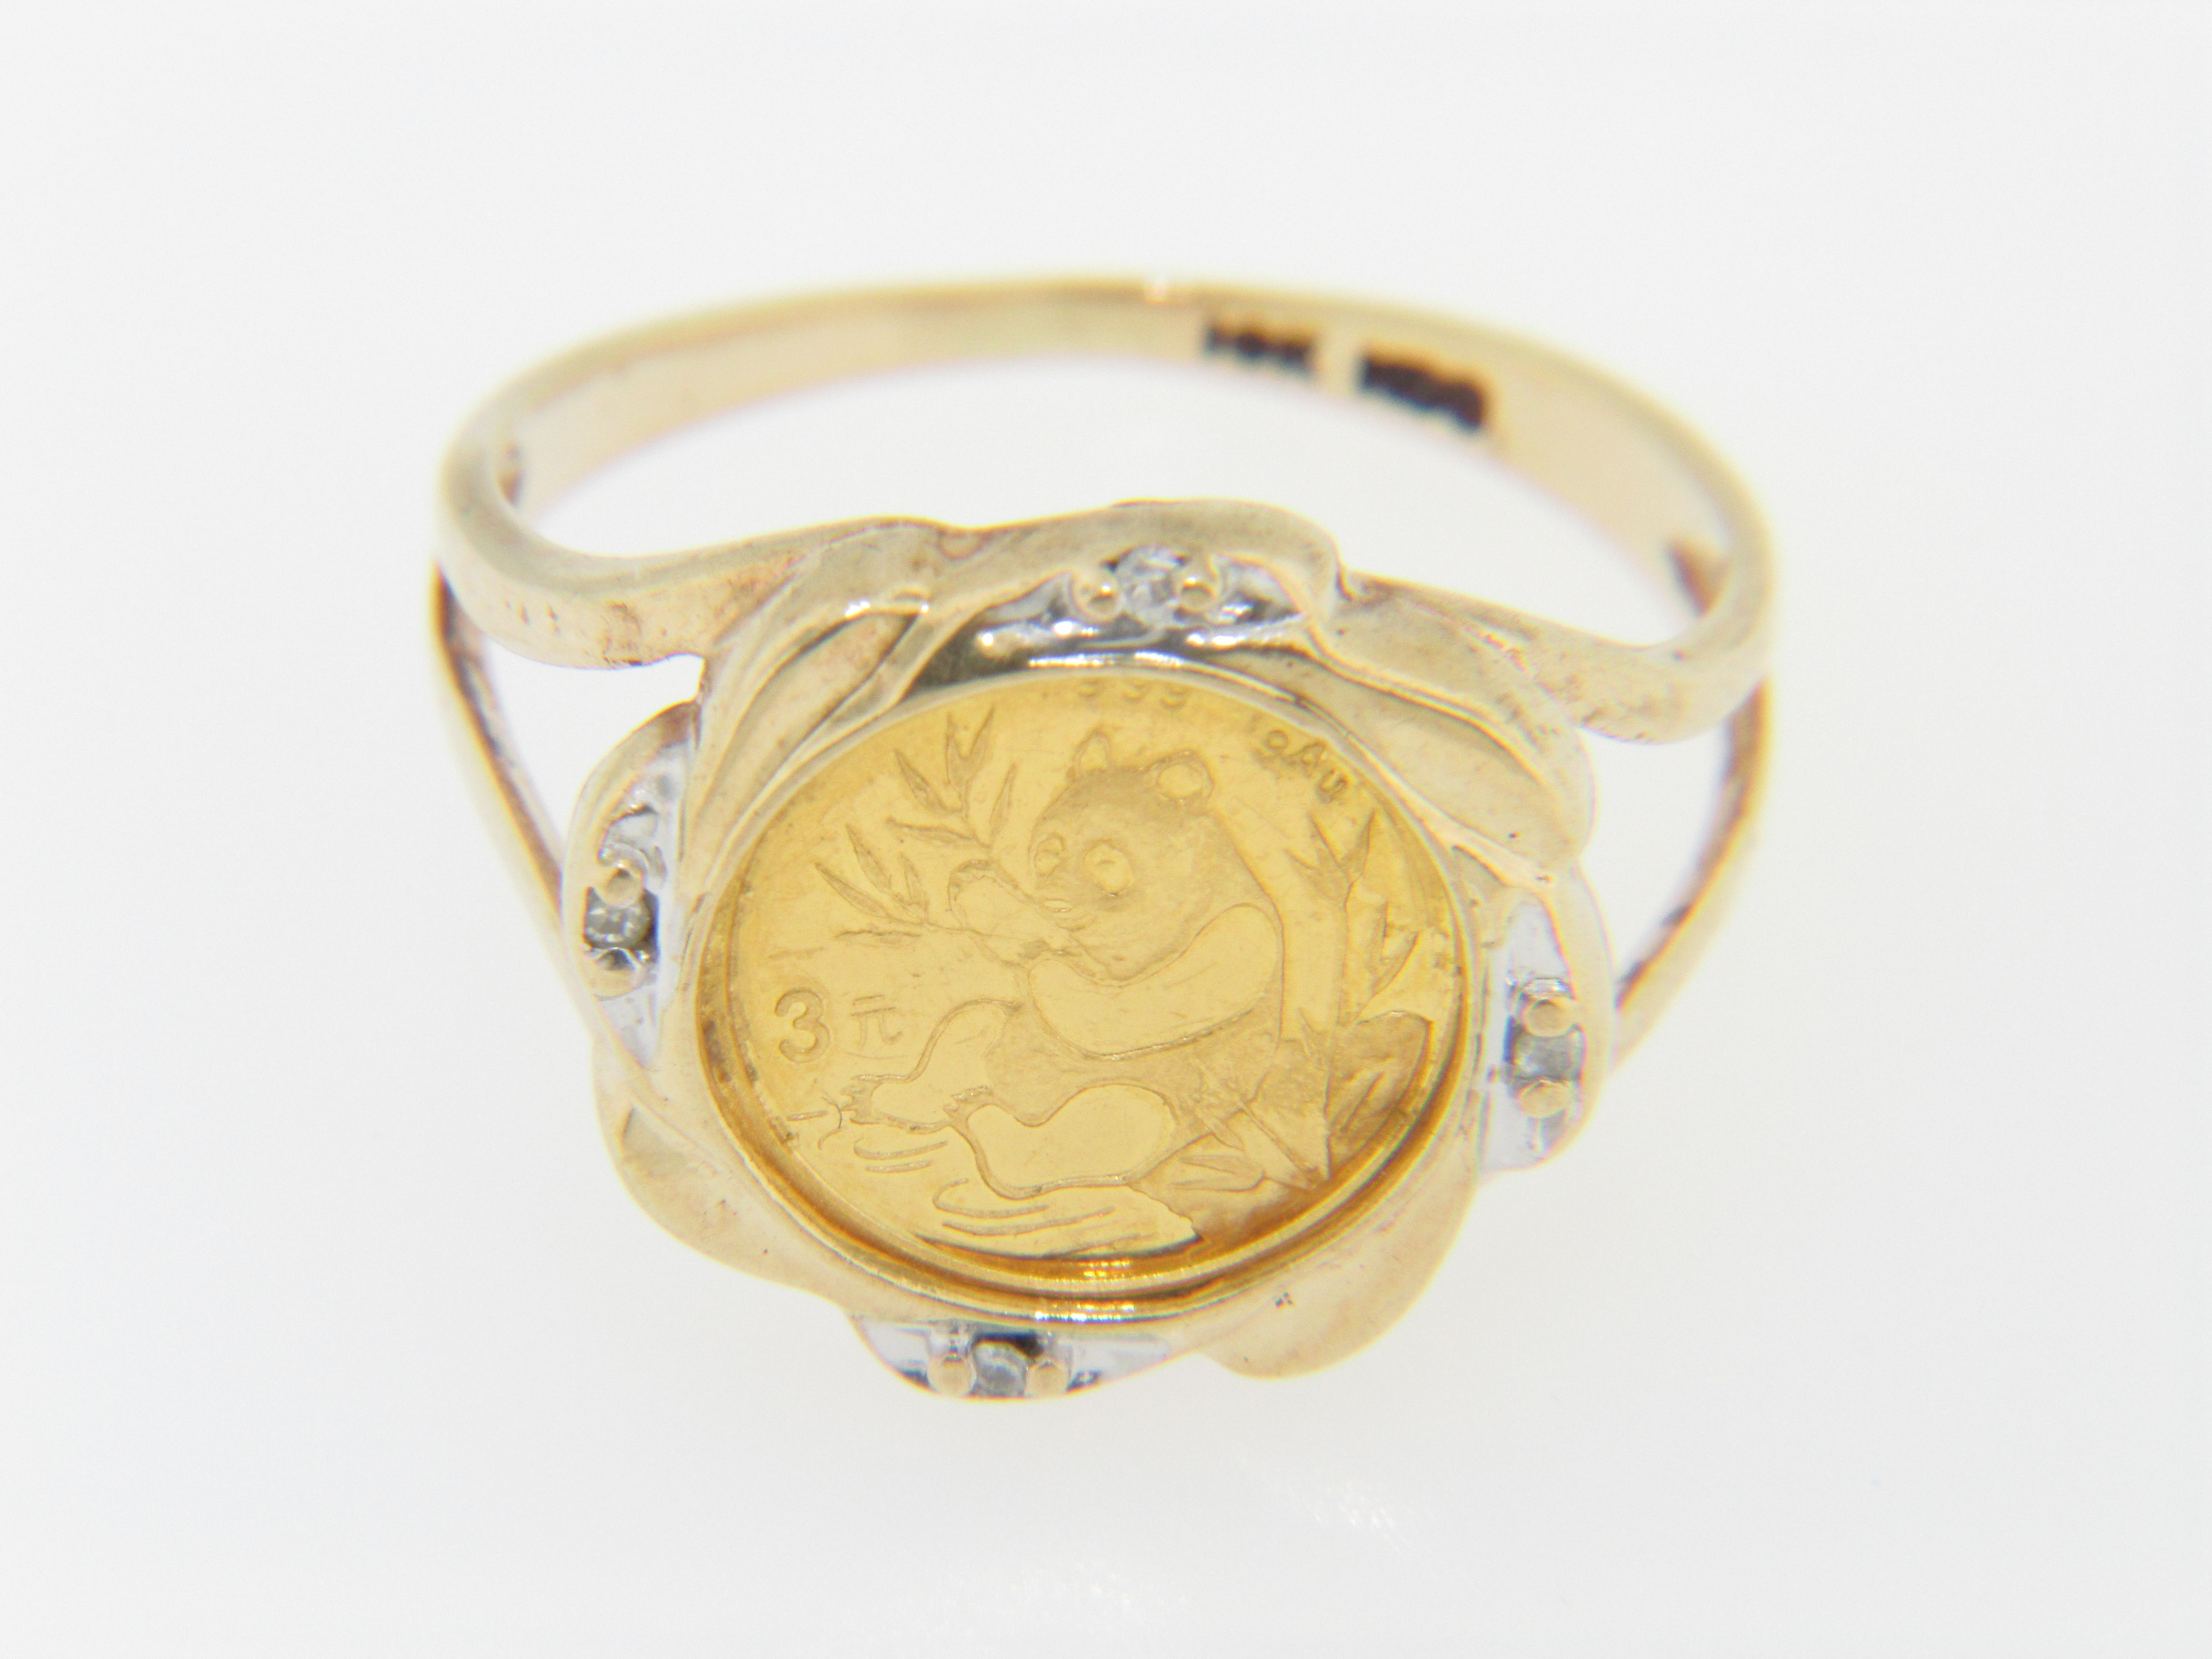 This Is A Vintage 1991 Chinese 999 Gram 3 Yuan Panda Coin Ring In 10k Yellow Gold Size 4 5 The Ring Weighs 2 5 Grams The Shank Me Coin Ring Rings Panda Ring